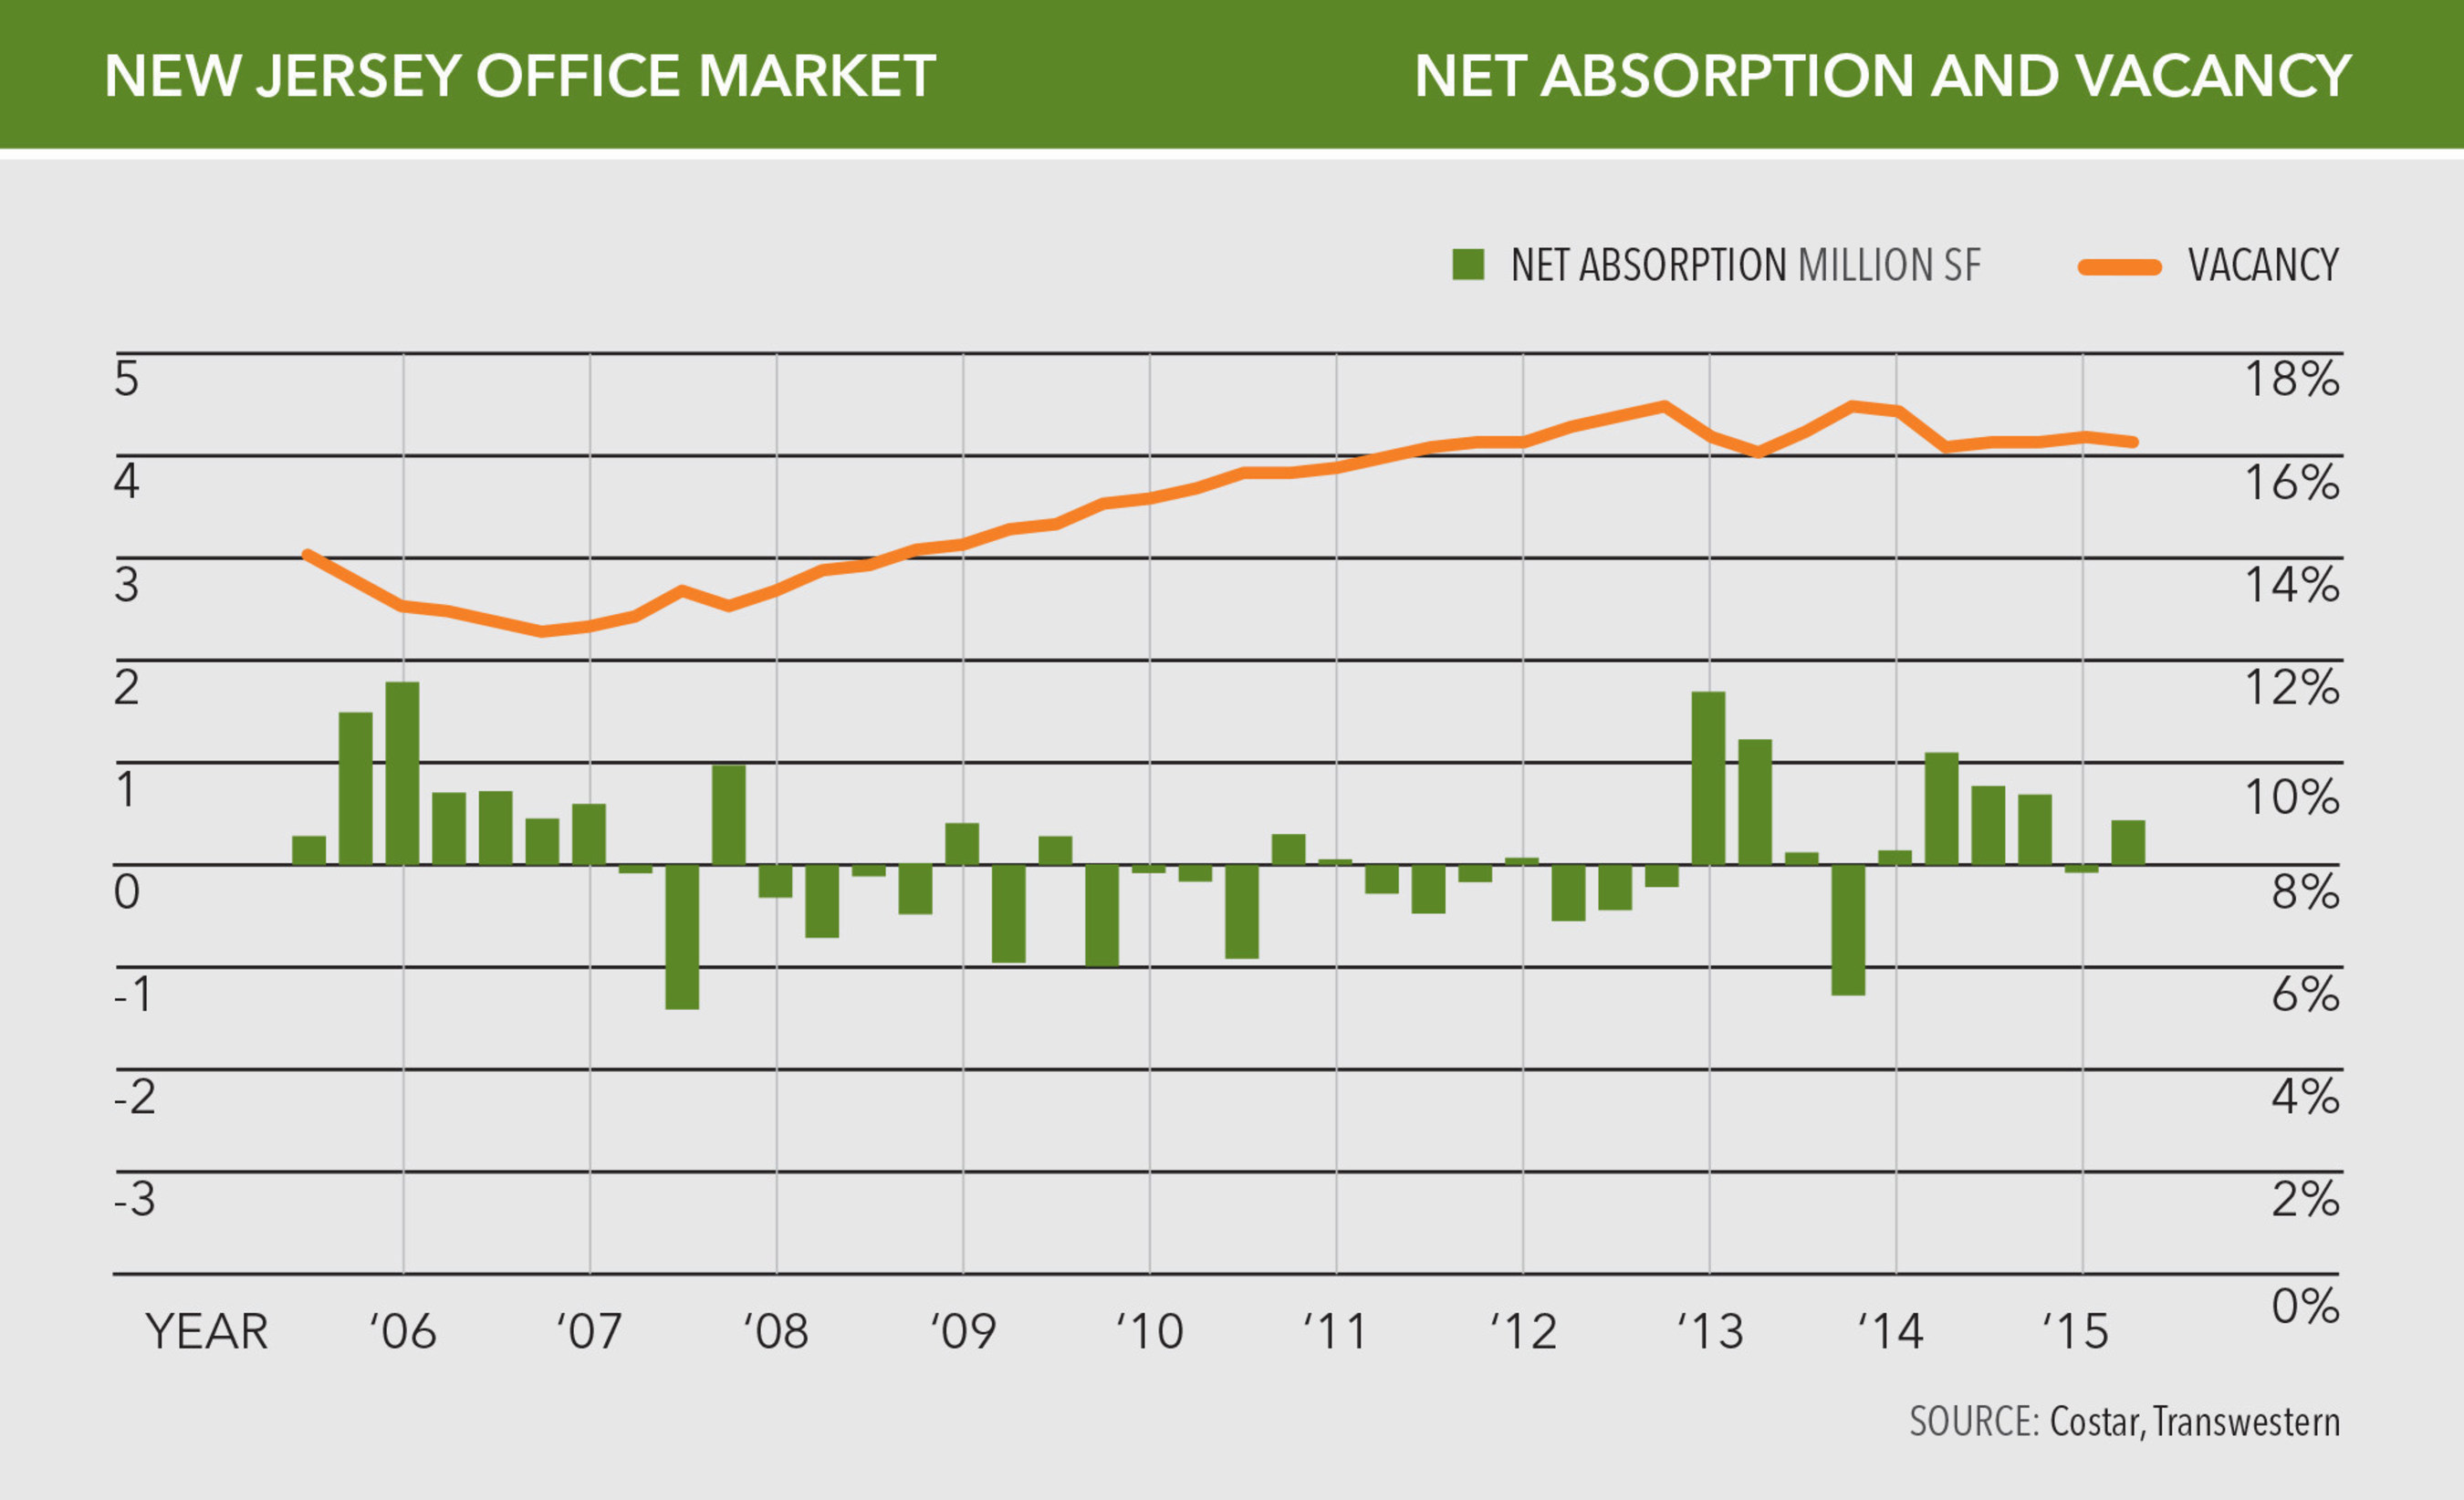 Blue-Chip Tenants From Multiple Industries Drive Improvements In New Jersey Office Market